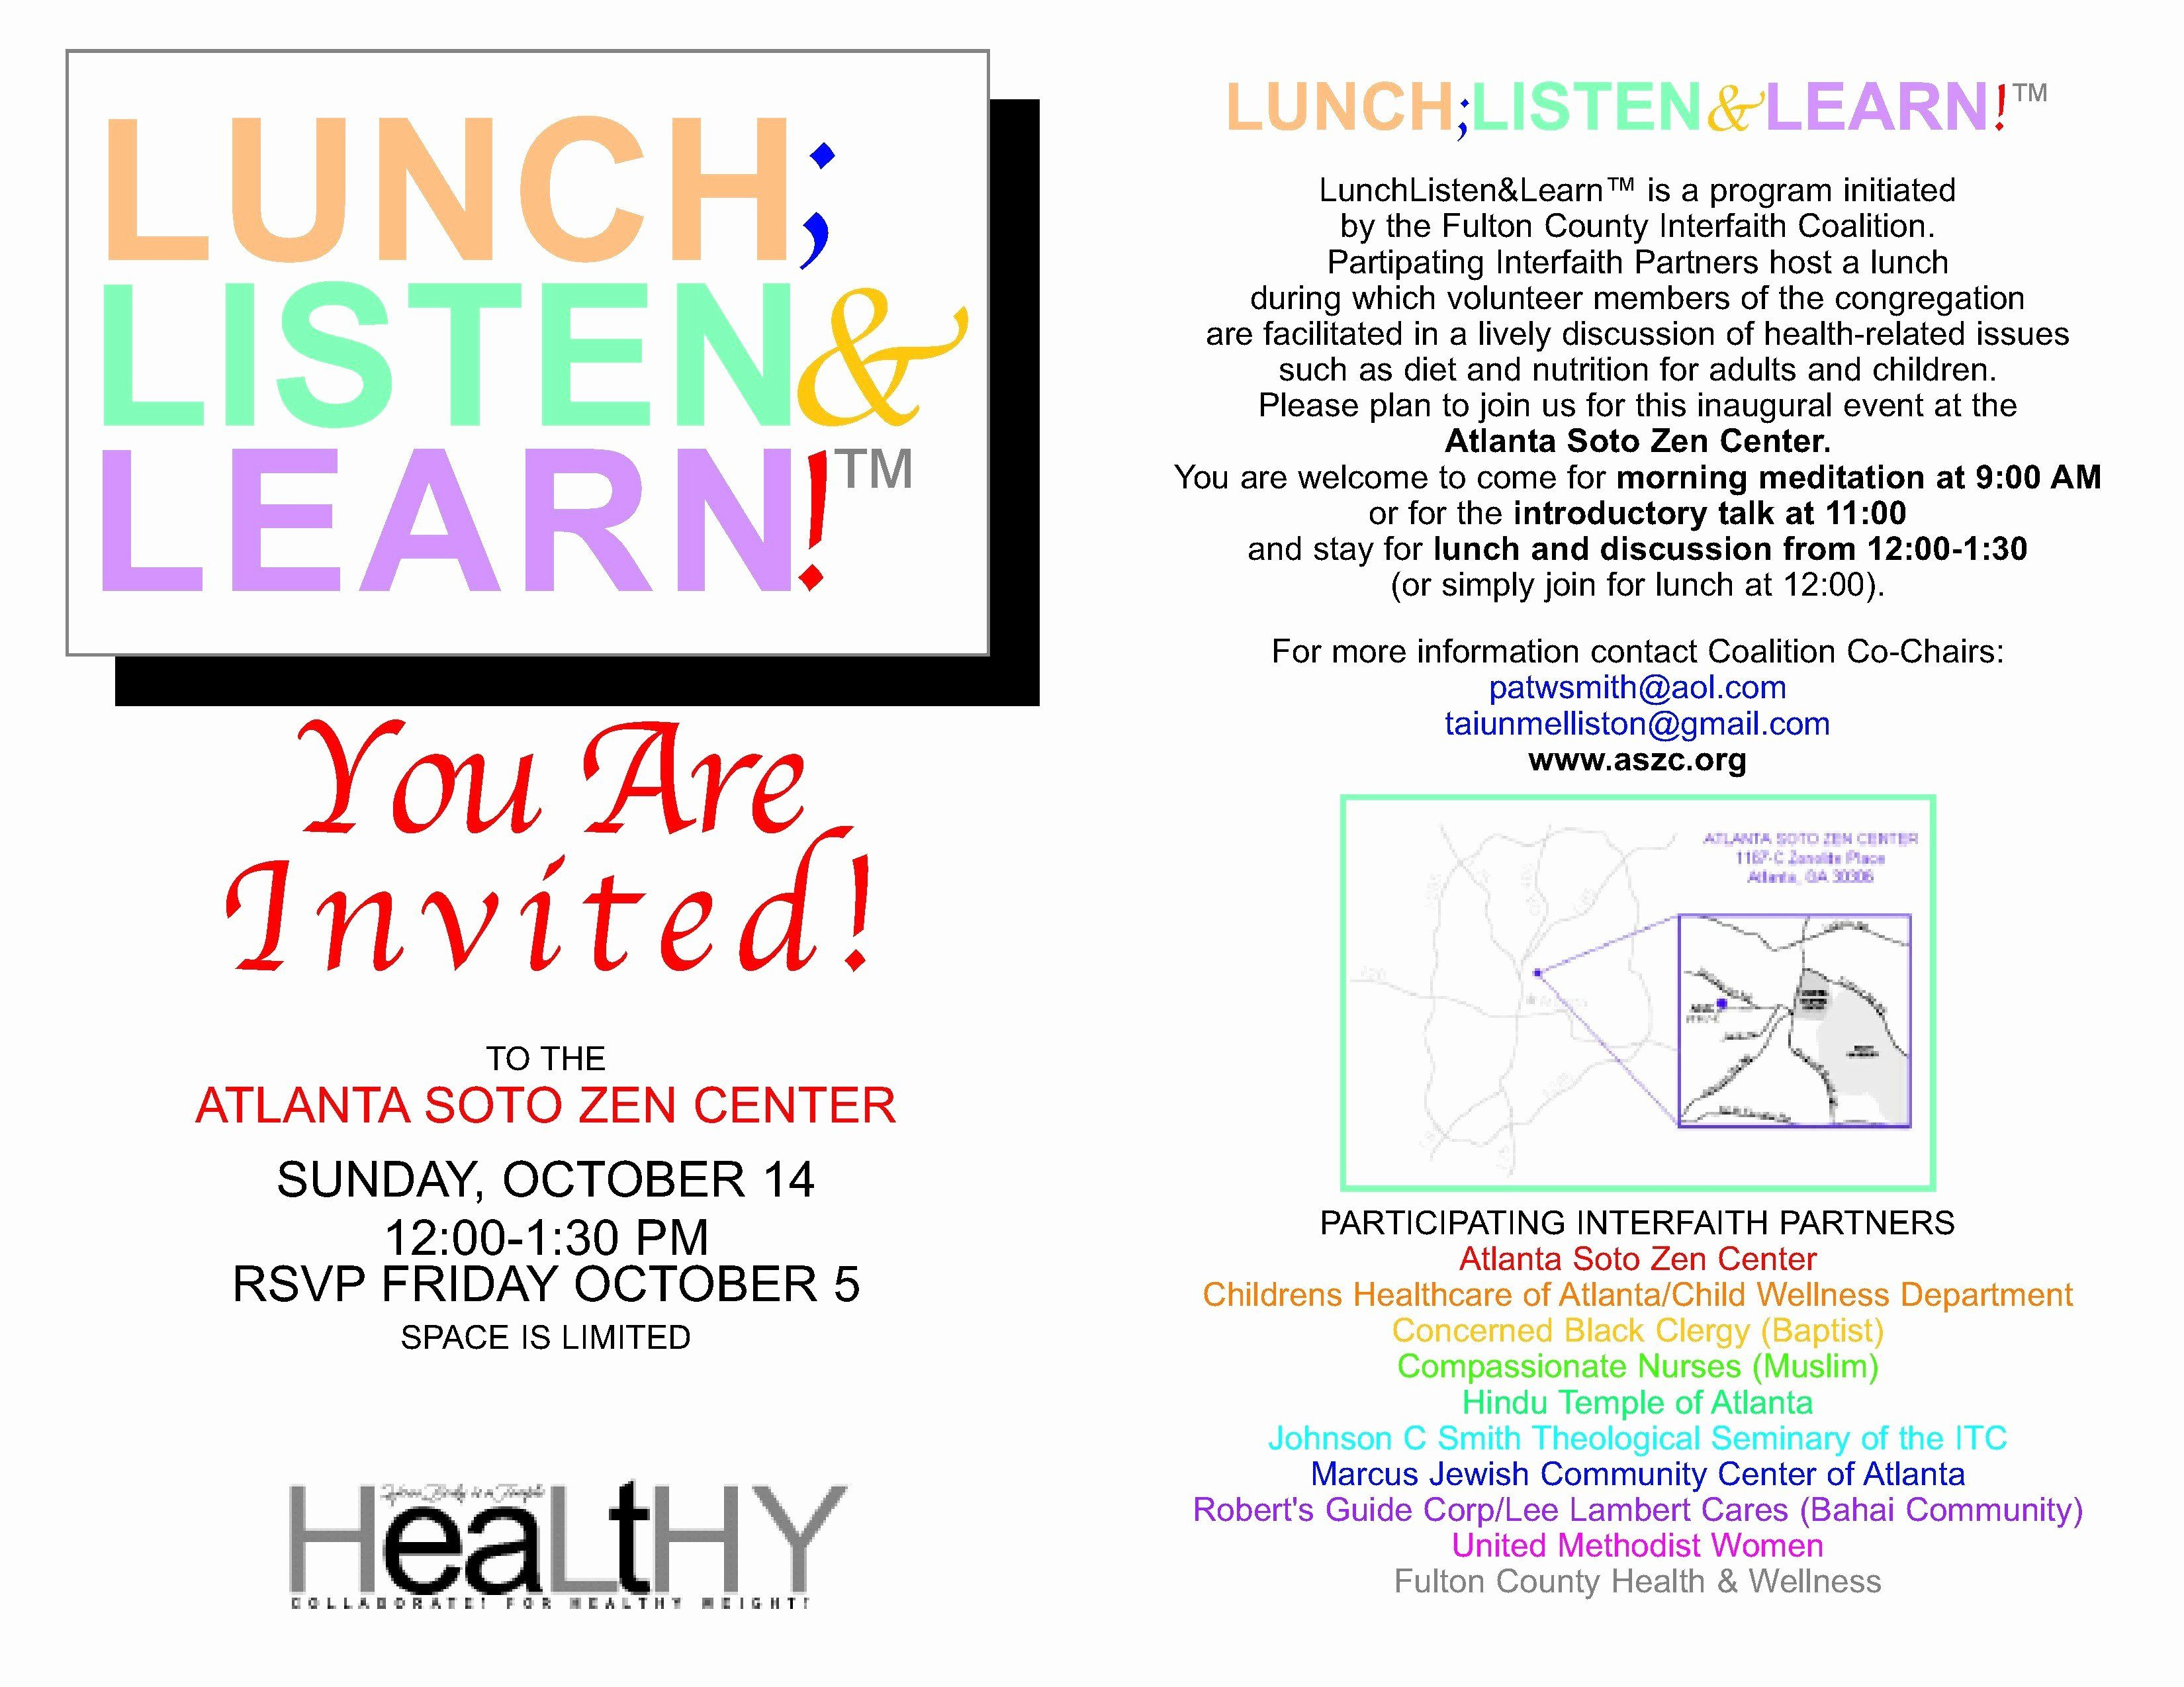 Lunch And Learn Invite Template Best Of Cosee Blogs Lunch Learn Marketing Employee Handbook Template